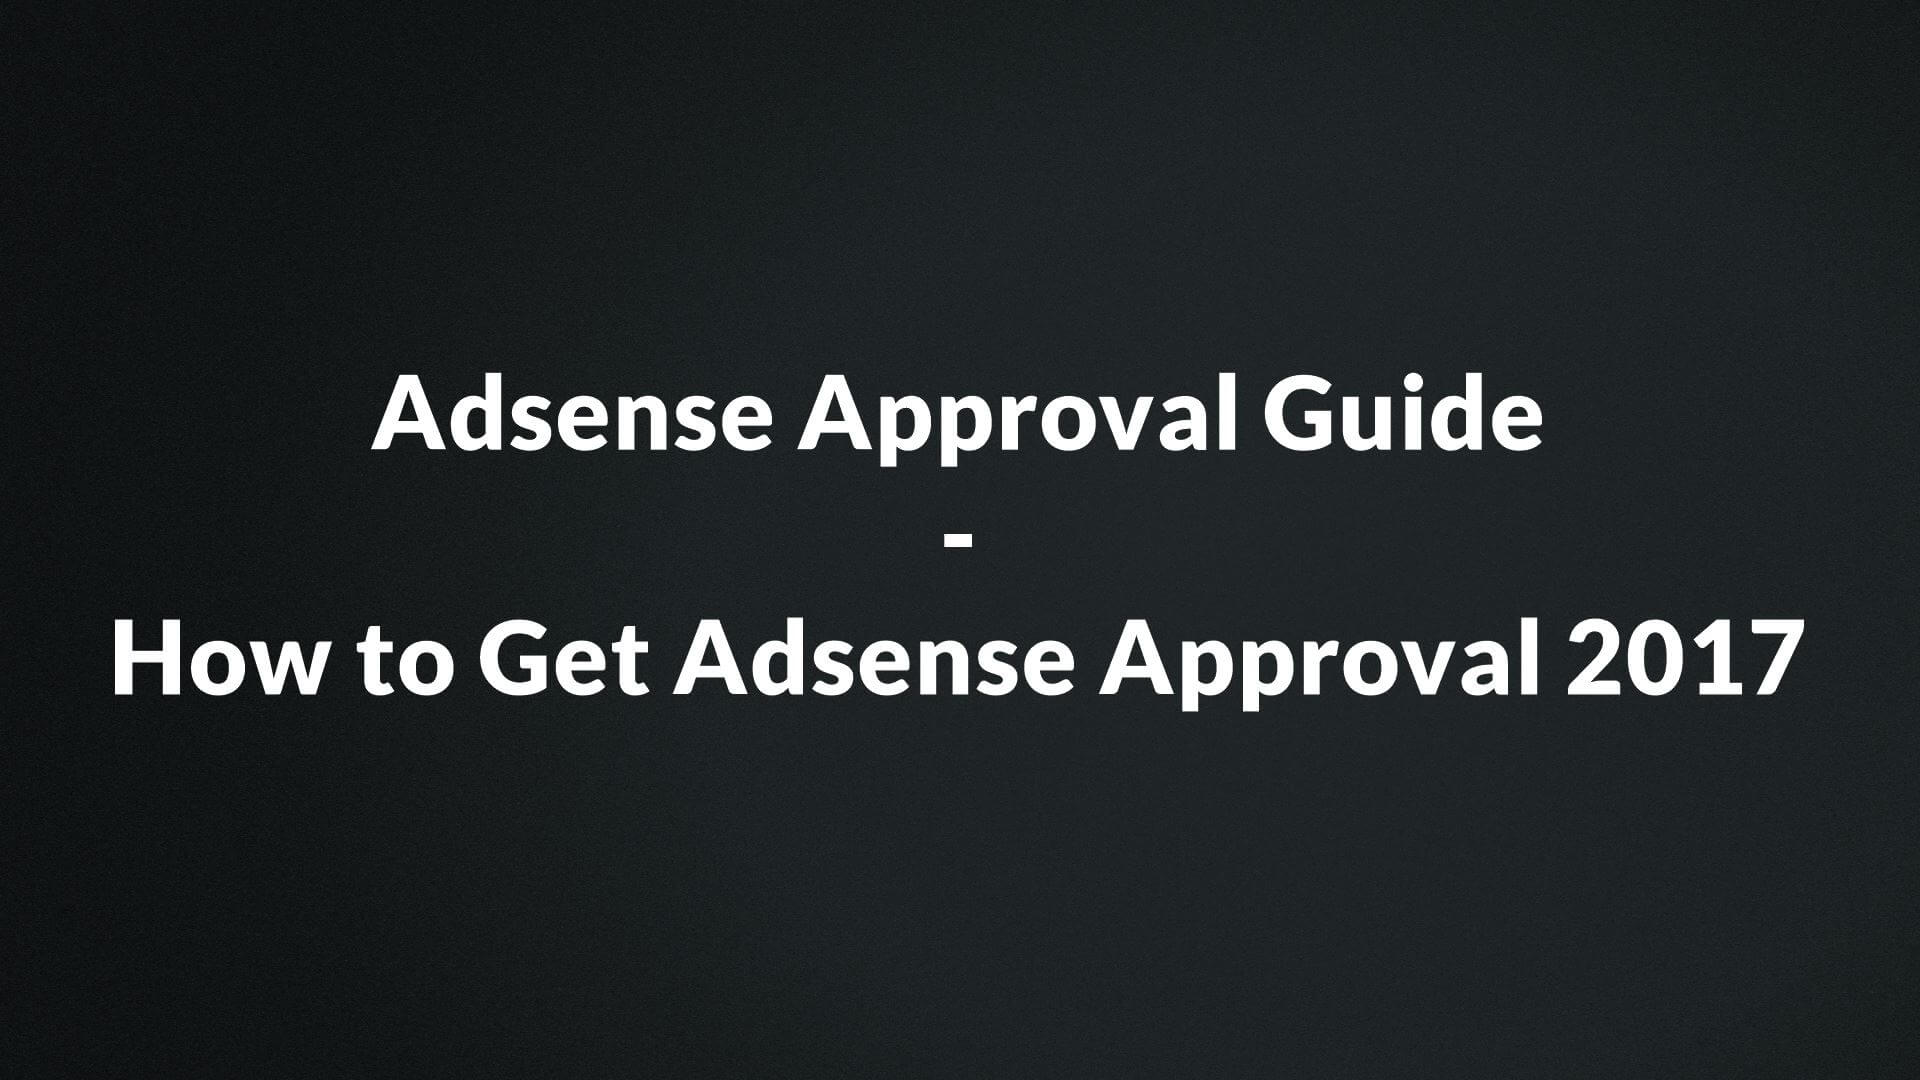 Adsense Approval Guide - How to Get Adsense Approval 2017